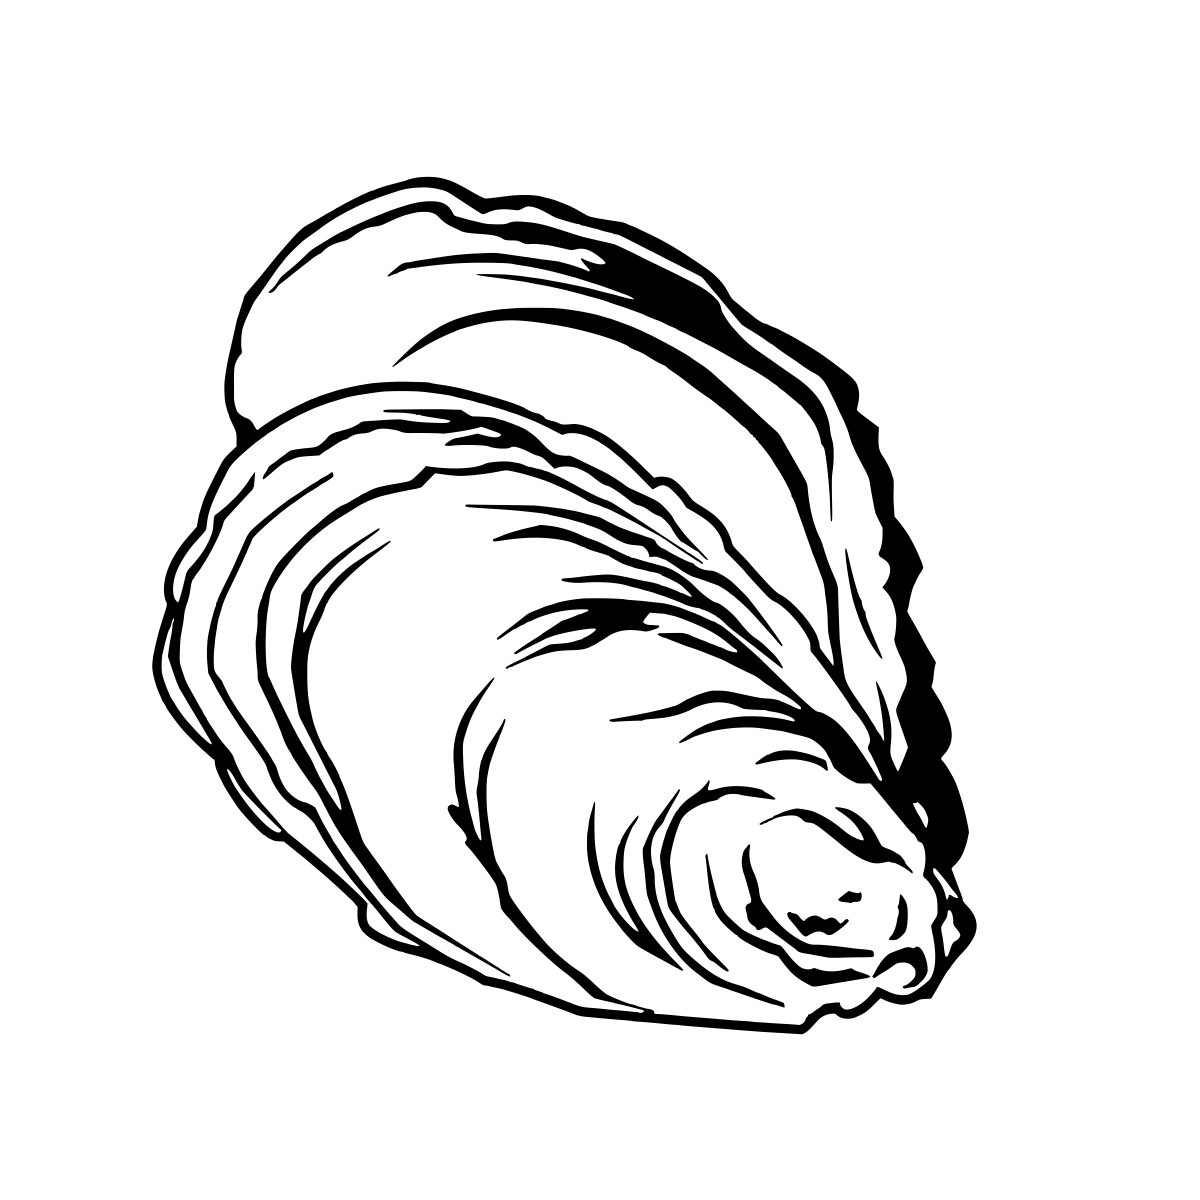 Oyster Clipart Hand Drawn Oyster Hand Drawn Transparent